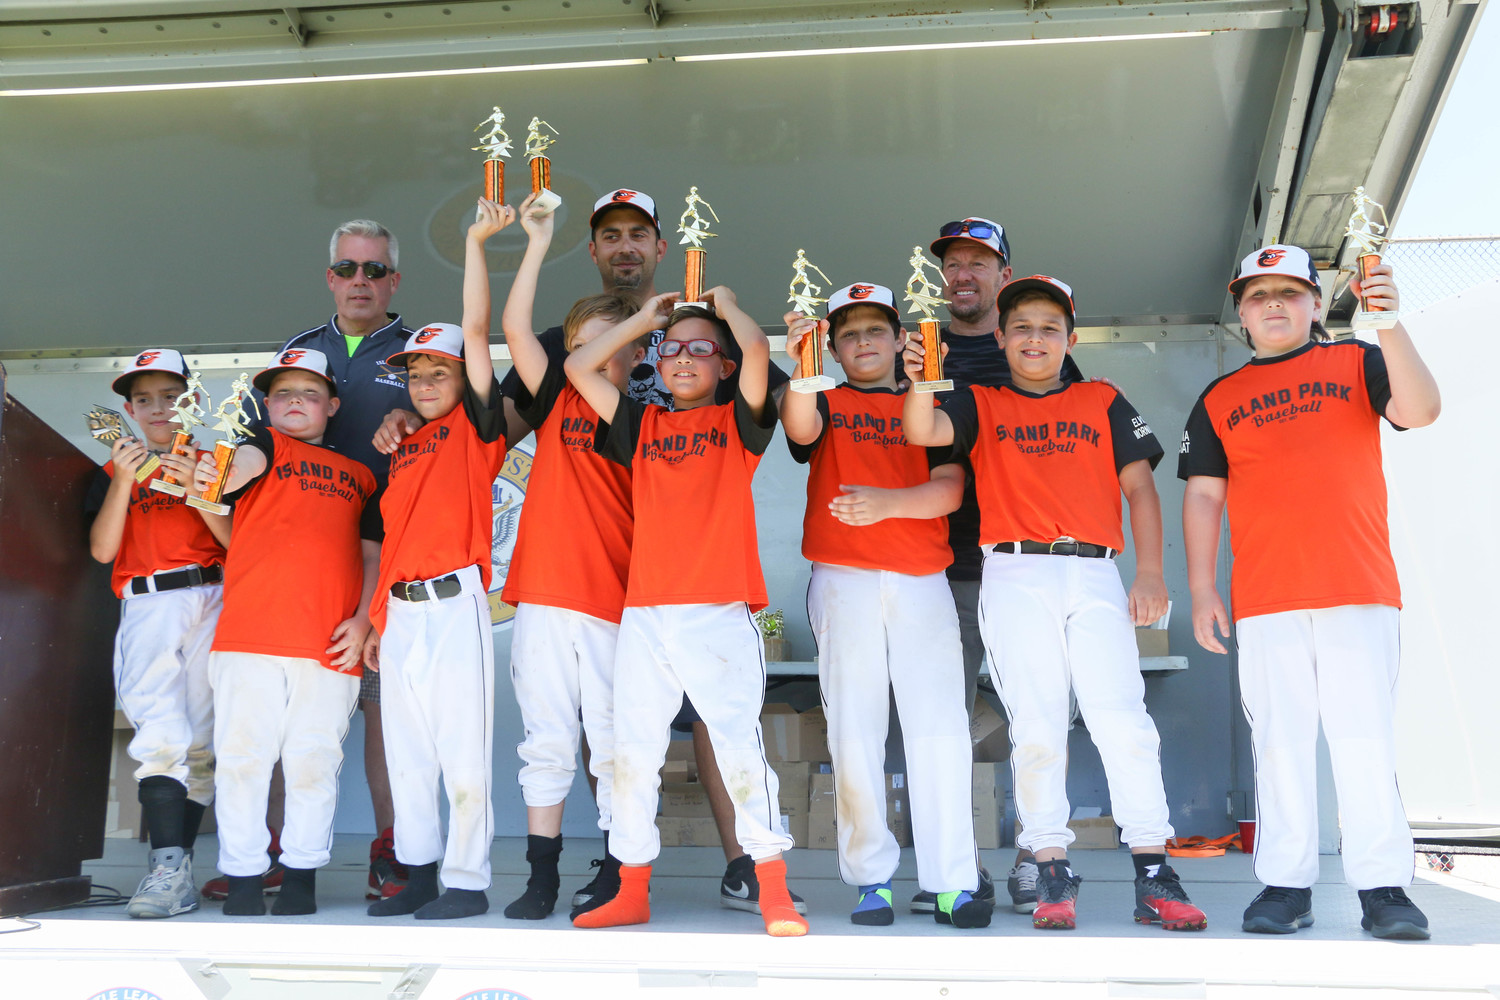 The younger kids from the Island Park Orioles baseball team were thrilled receiving their trophies.